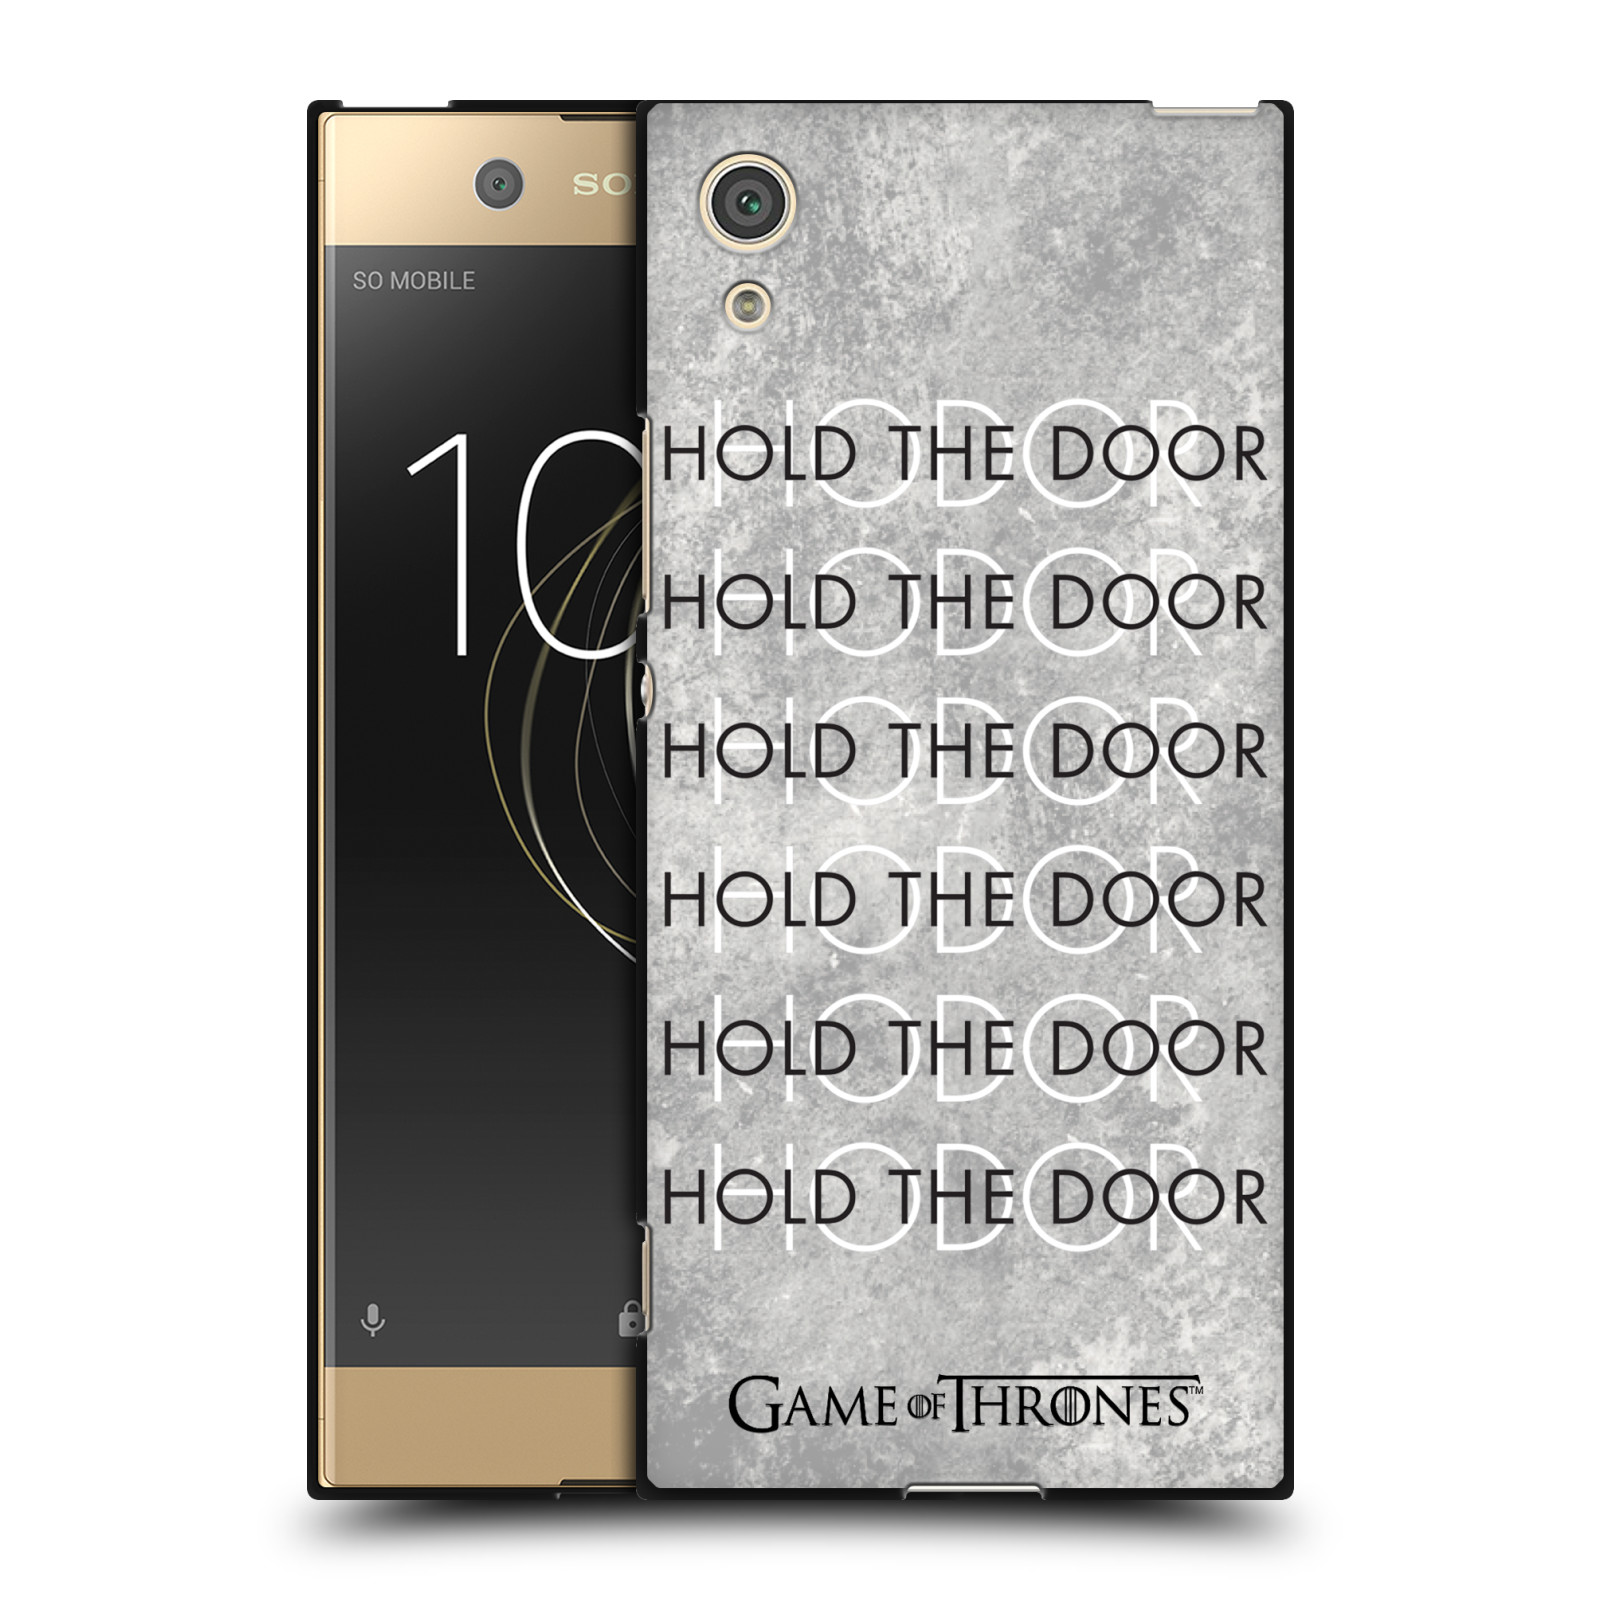 OFFICIAL-HBO-GAME-OF-THRONES-HODOR-BLACK-SOFT-GEL-CASE-FOR-SONY-PHONES